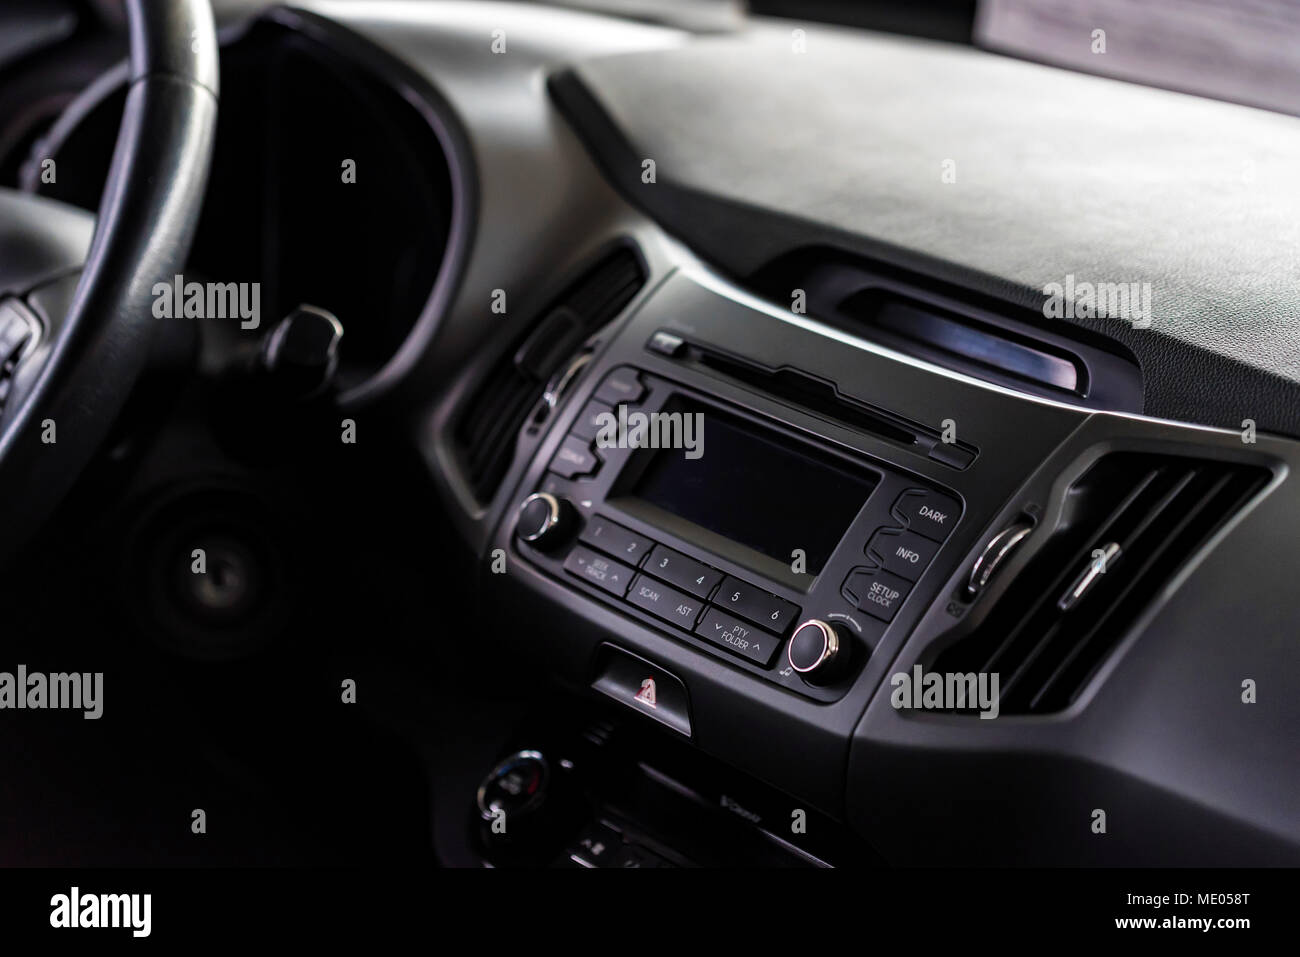 Multimedia system of modern car - Stock Image